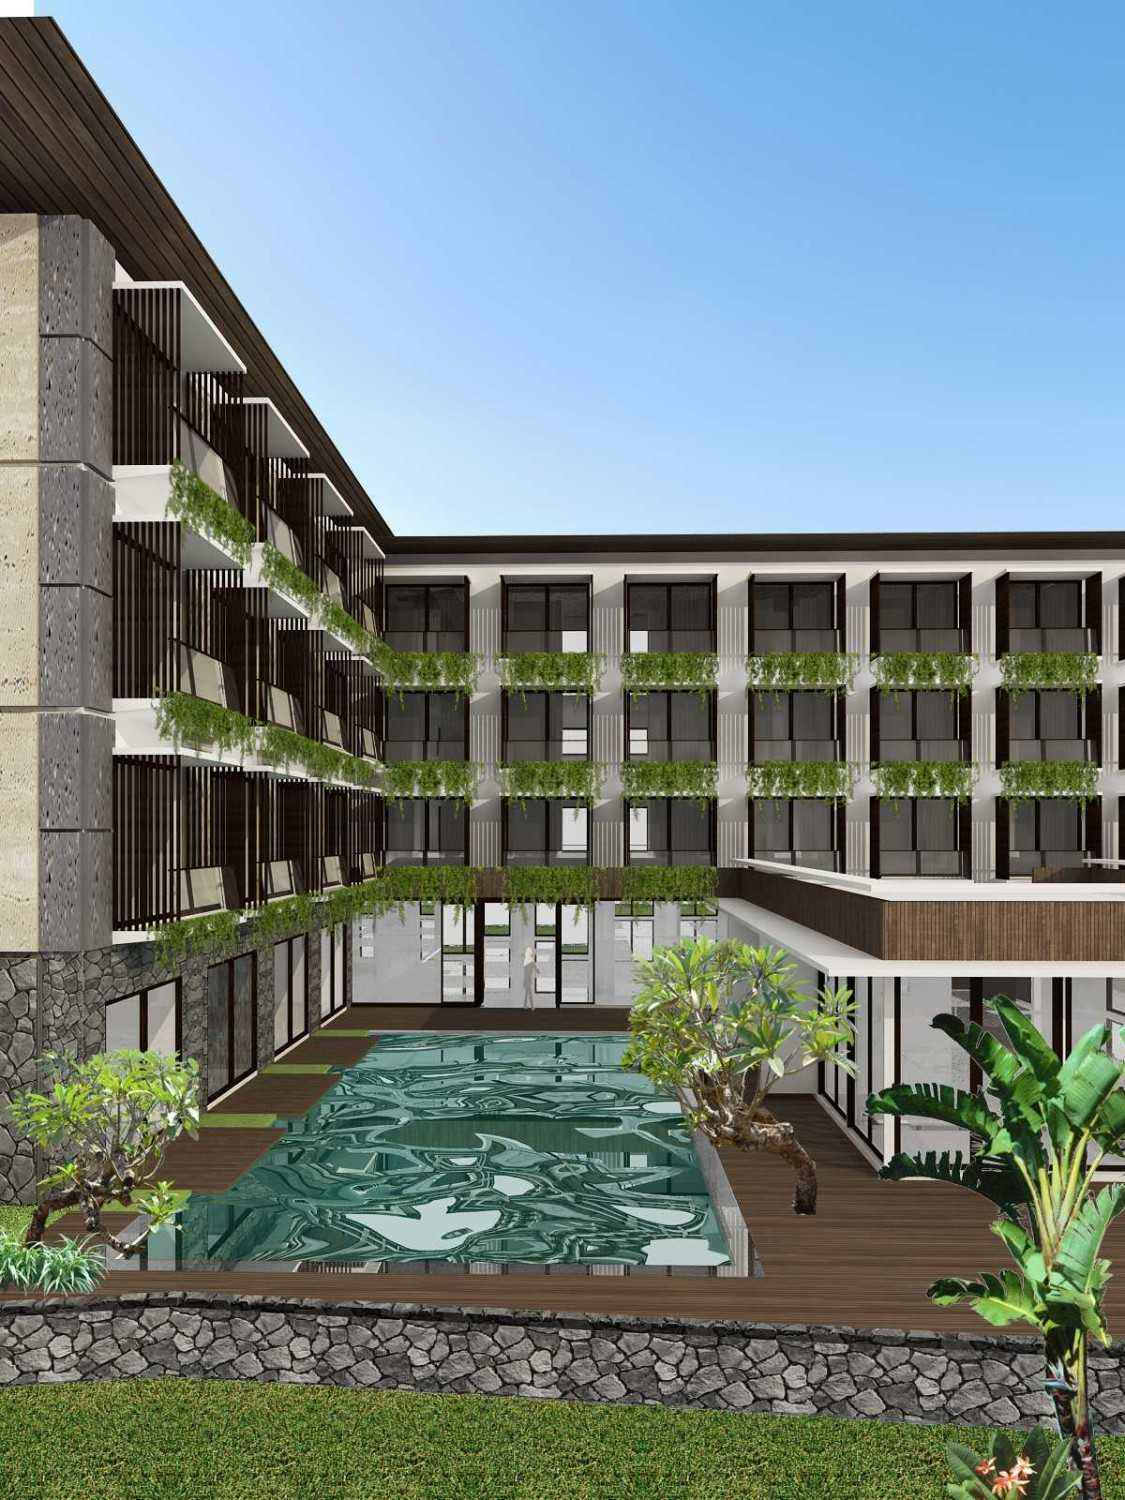 Studio Asri Canggu Beach Hotel Bali, Indonesia Bali, Indonesia Swimming Pool Area  17021